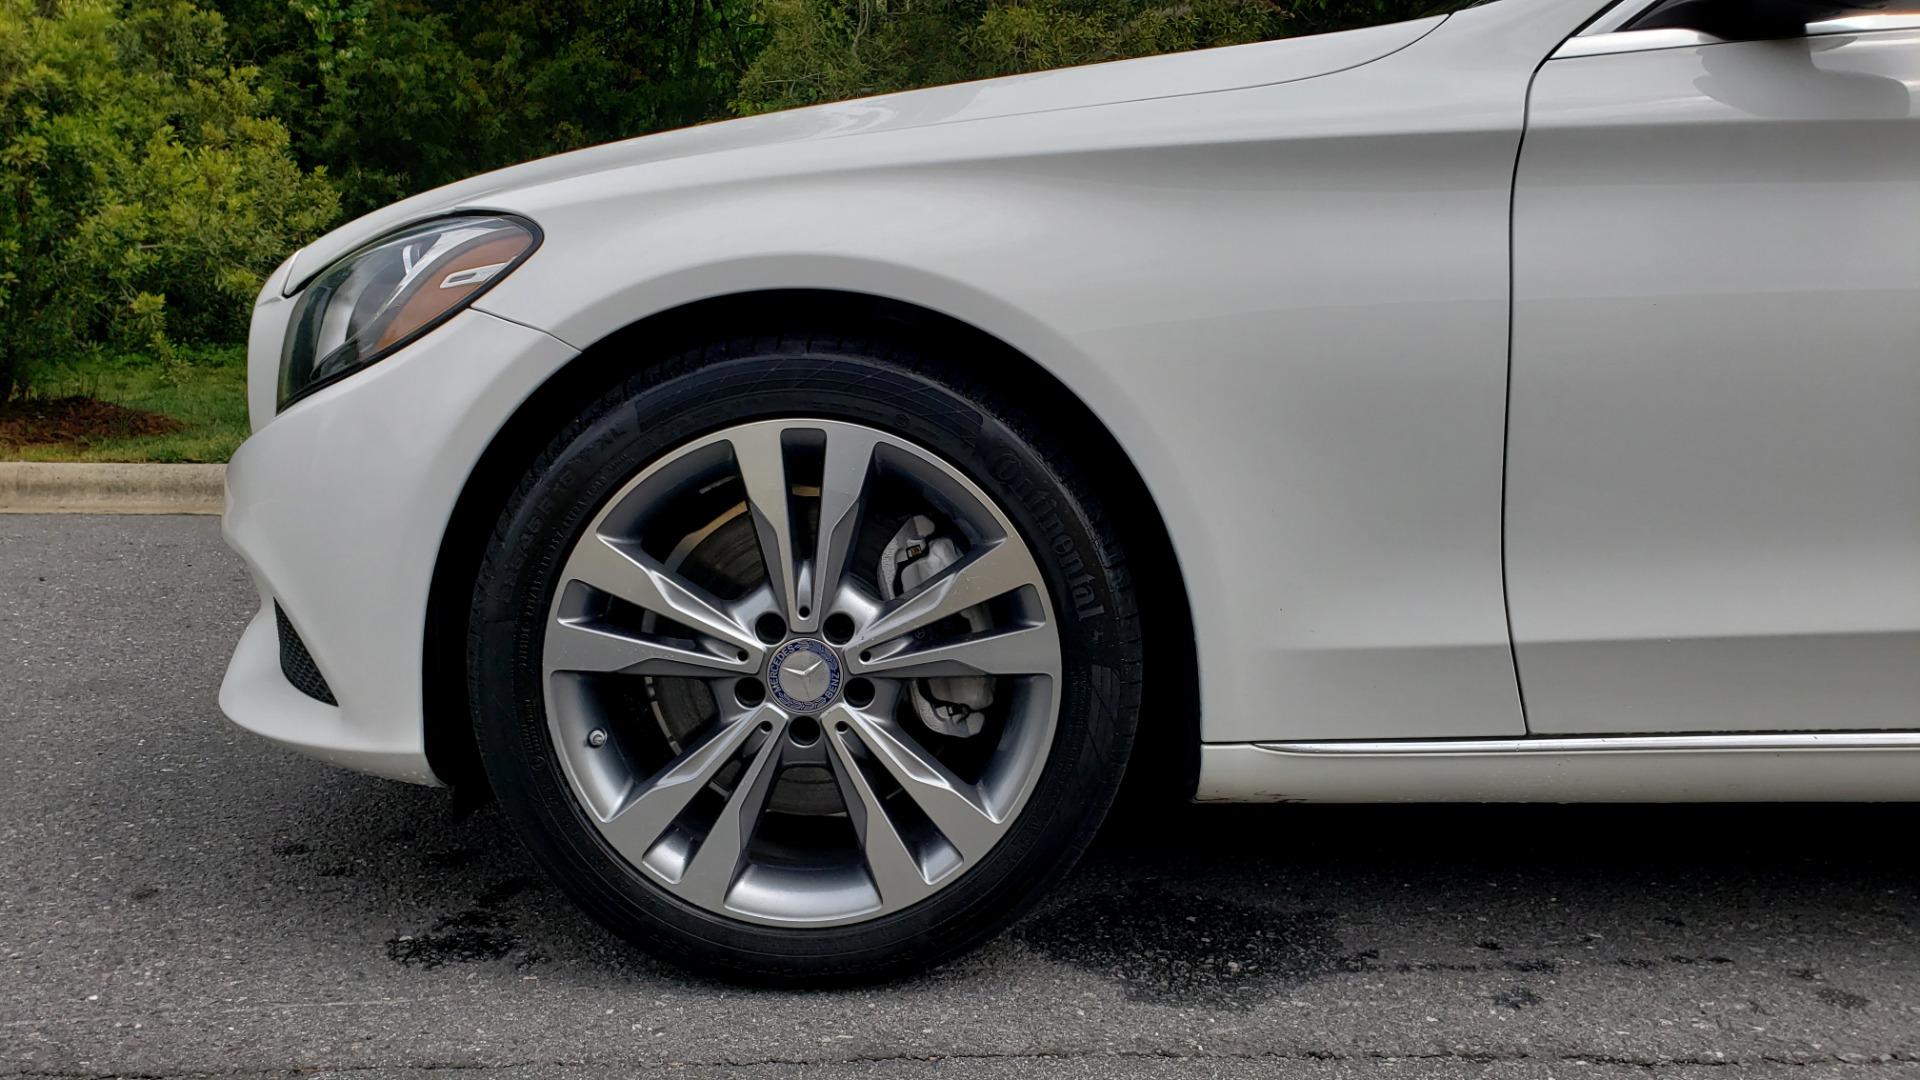 Used 2017 Mercedes-Benz C-Class C 300 PREMIUM / NAV / PANO-ROOF / HTD STS / REARVIEW for sale Sold at Formula Imports in Charlotte NC 28227 71